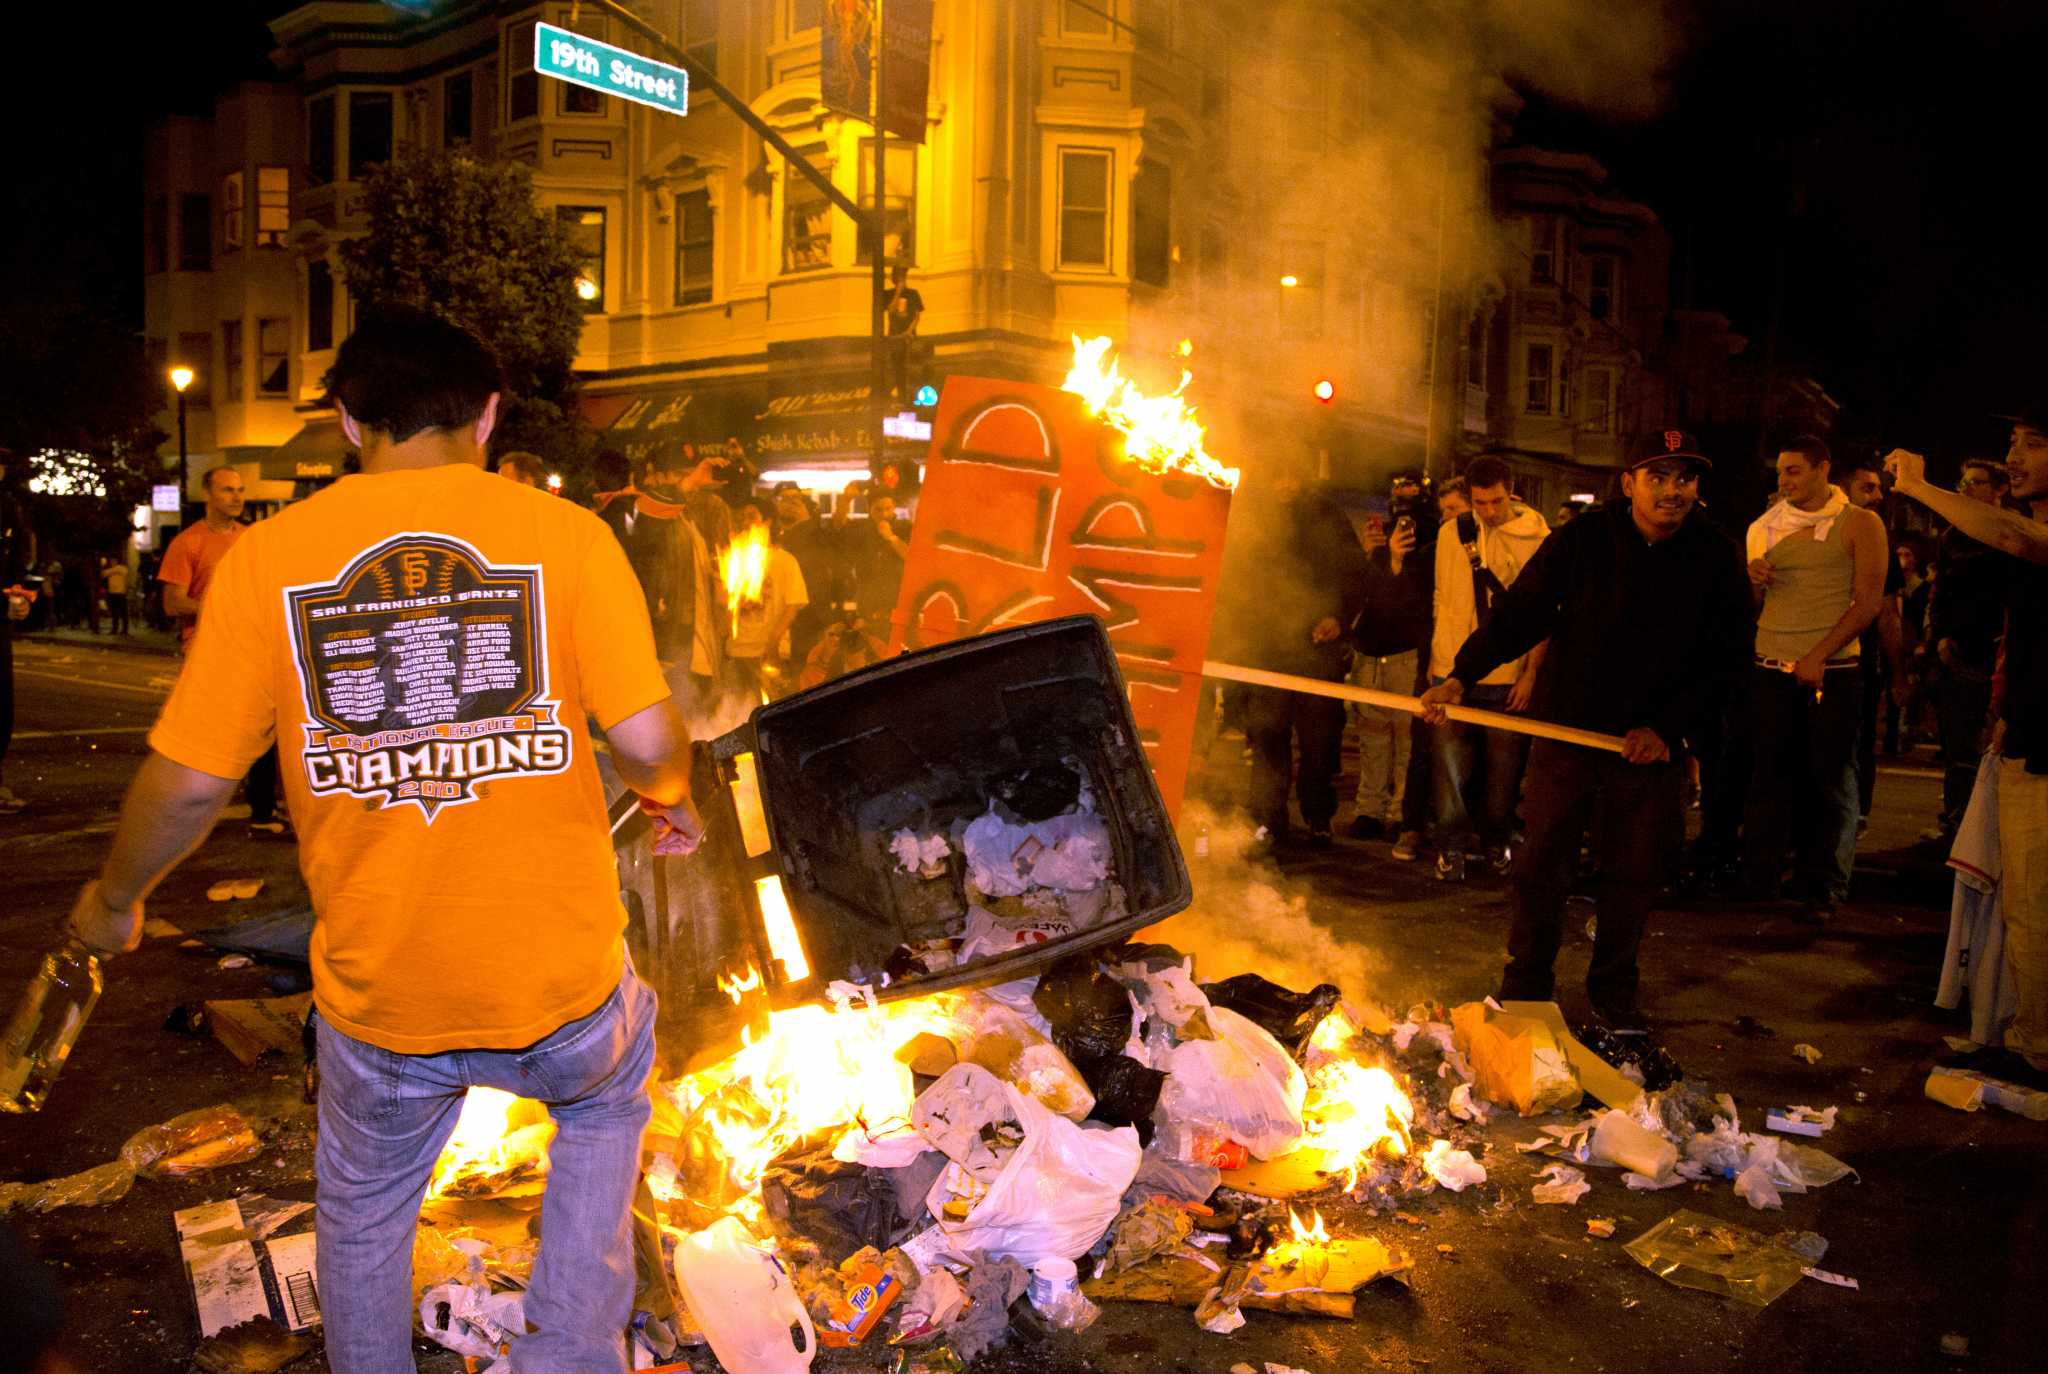 Dynasty of Destruction: Giants fans destroy the Mission's streets following World Series win